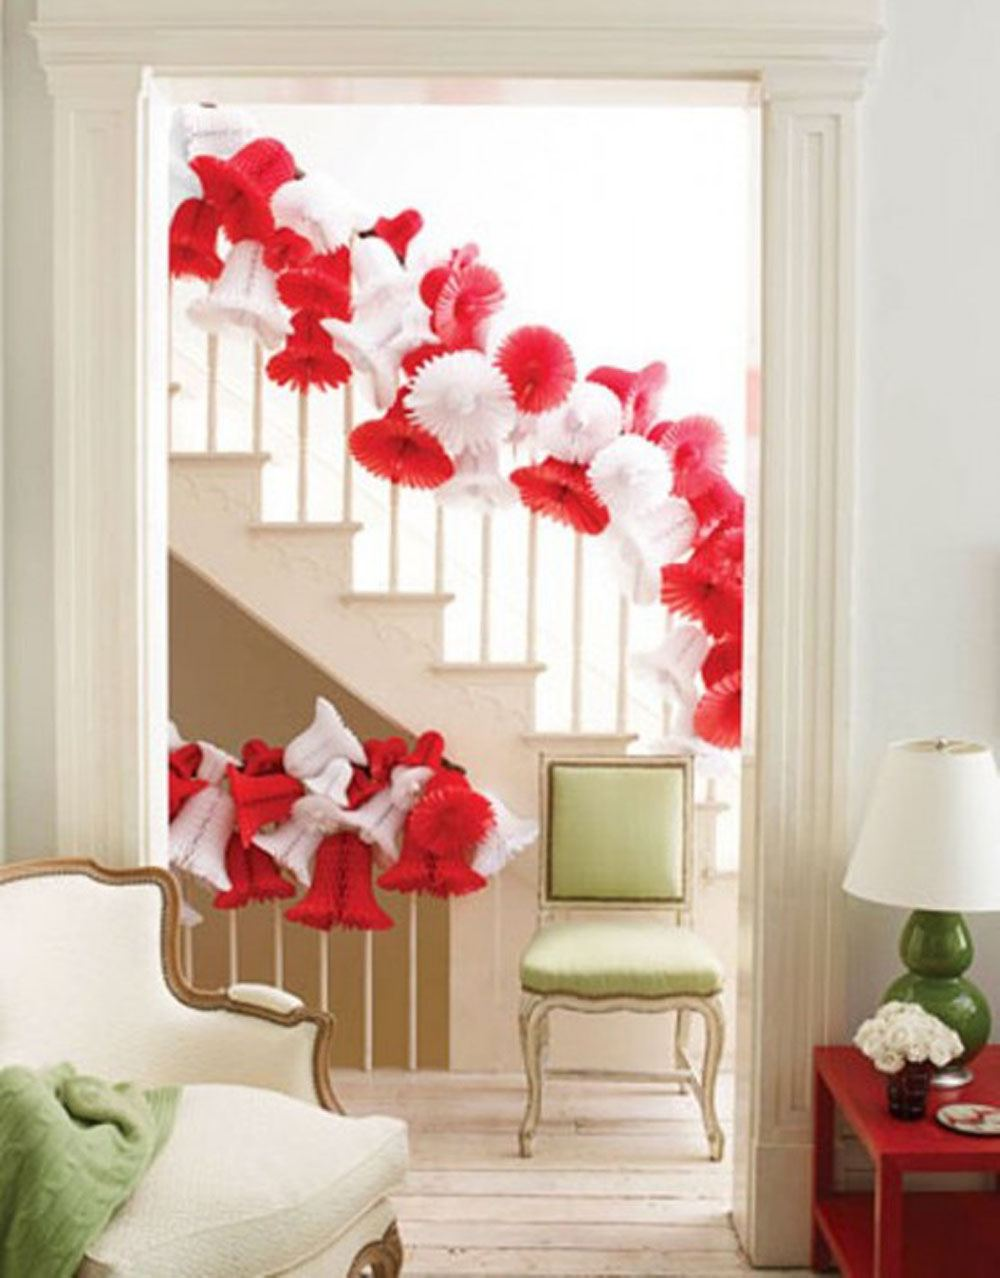 interior-picturesque-xmas-staircase-decoration-with-red-and-white-christmas-ornaments-enthralling-xmas-decorating-ideas-for-memorable-christmas